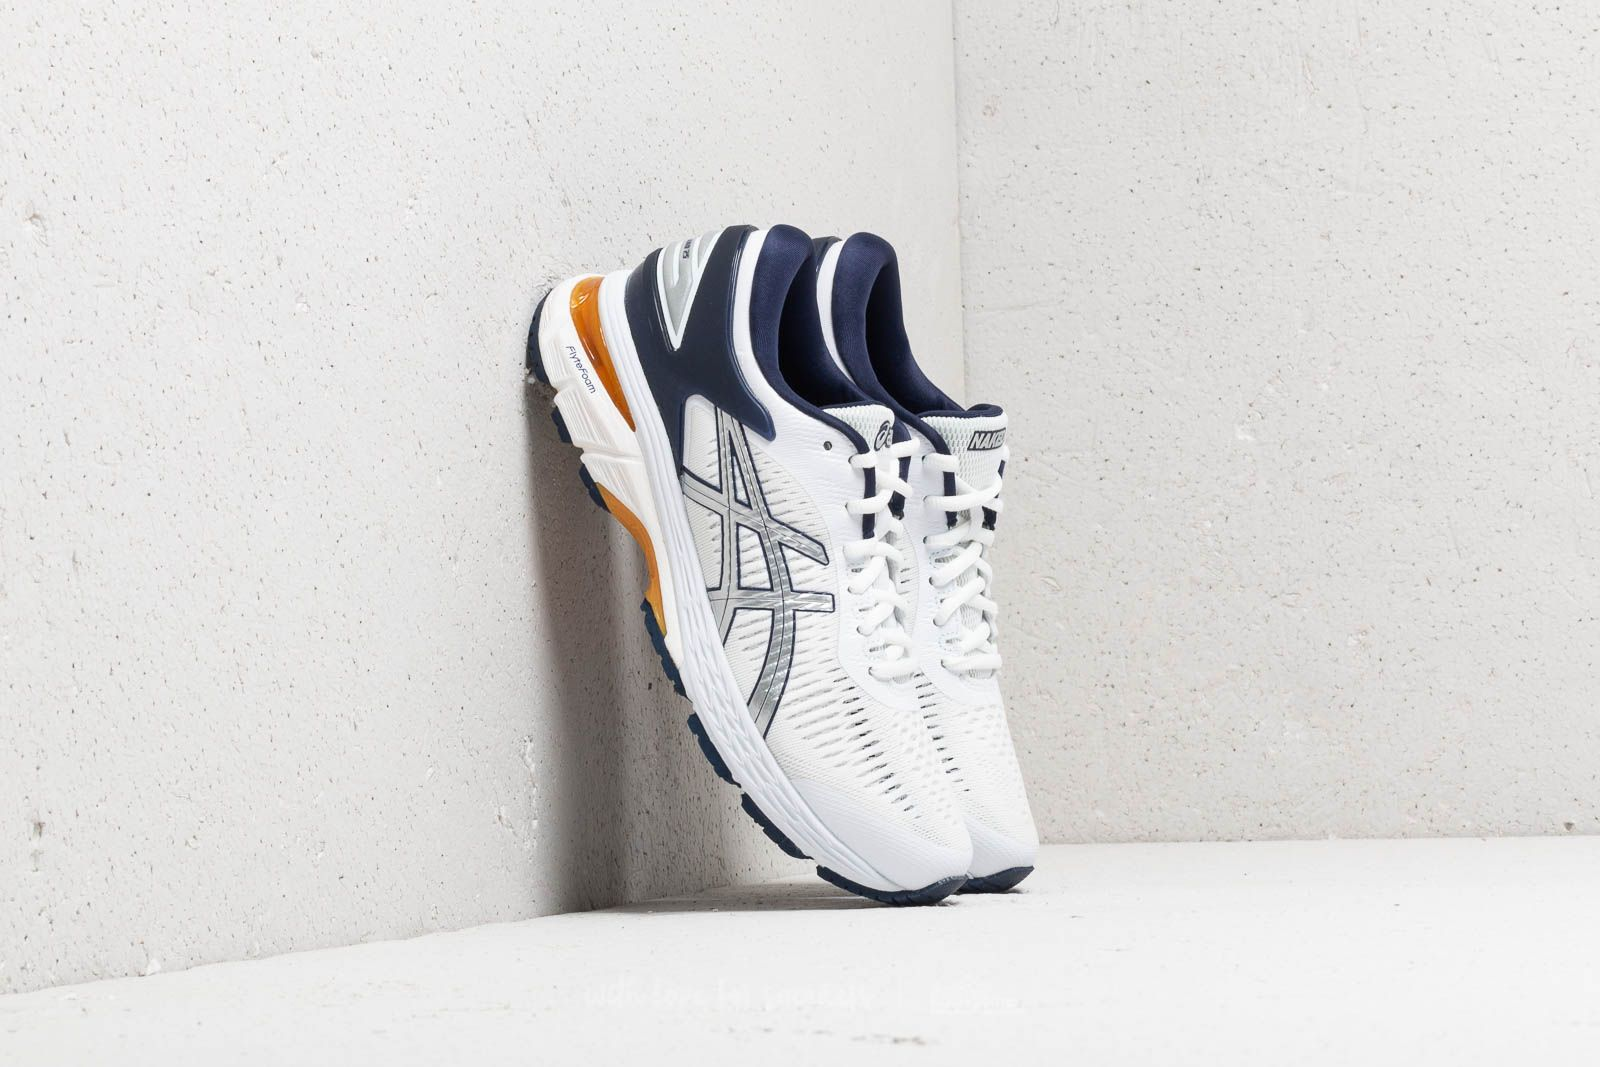 290c18d0ceb0 Asics x Naked Gel-Kayano 25 White  Peacoat at a great price 142 €